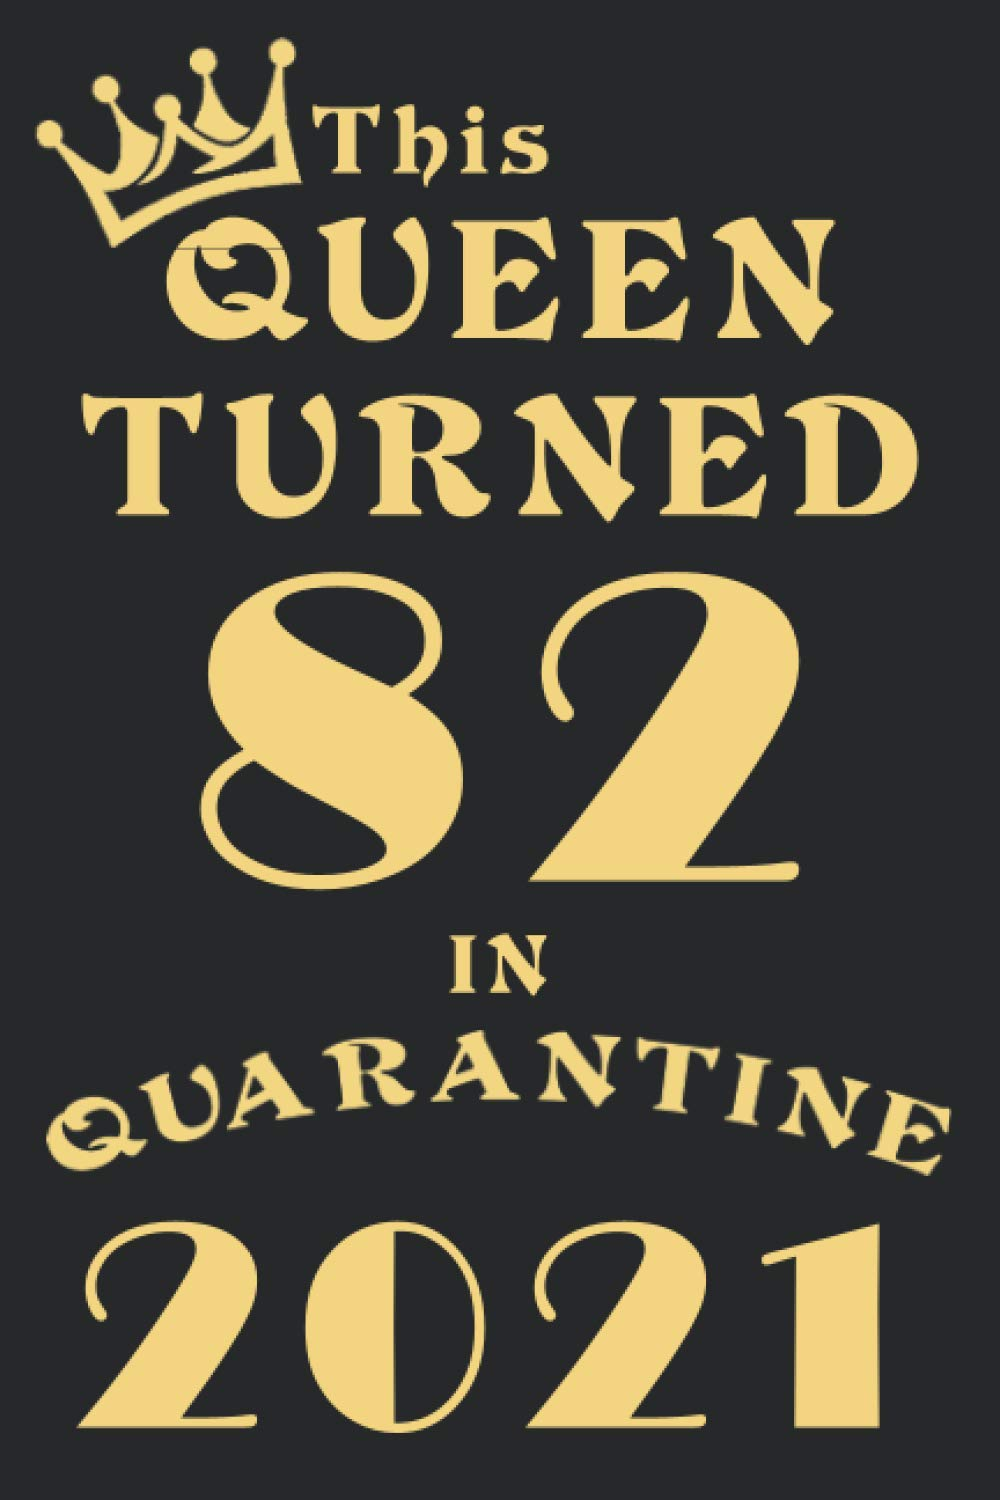 This Queen Turned 82 In Quarantine 2021: Happy 82nd Birthday 82 Years Old Gift for girls and children, teens, women, adults, family members/ Funny ... gifts her, quarantine journal notebook